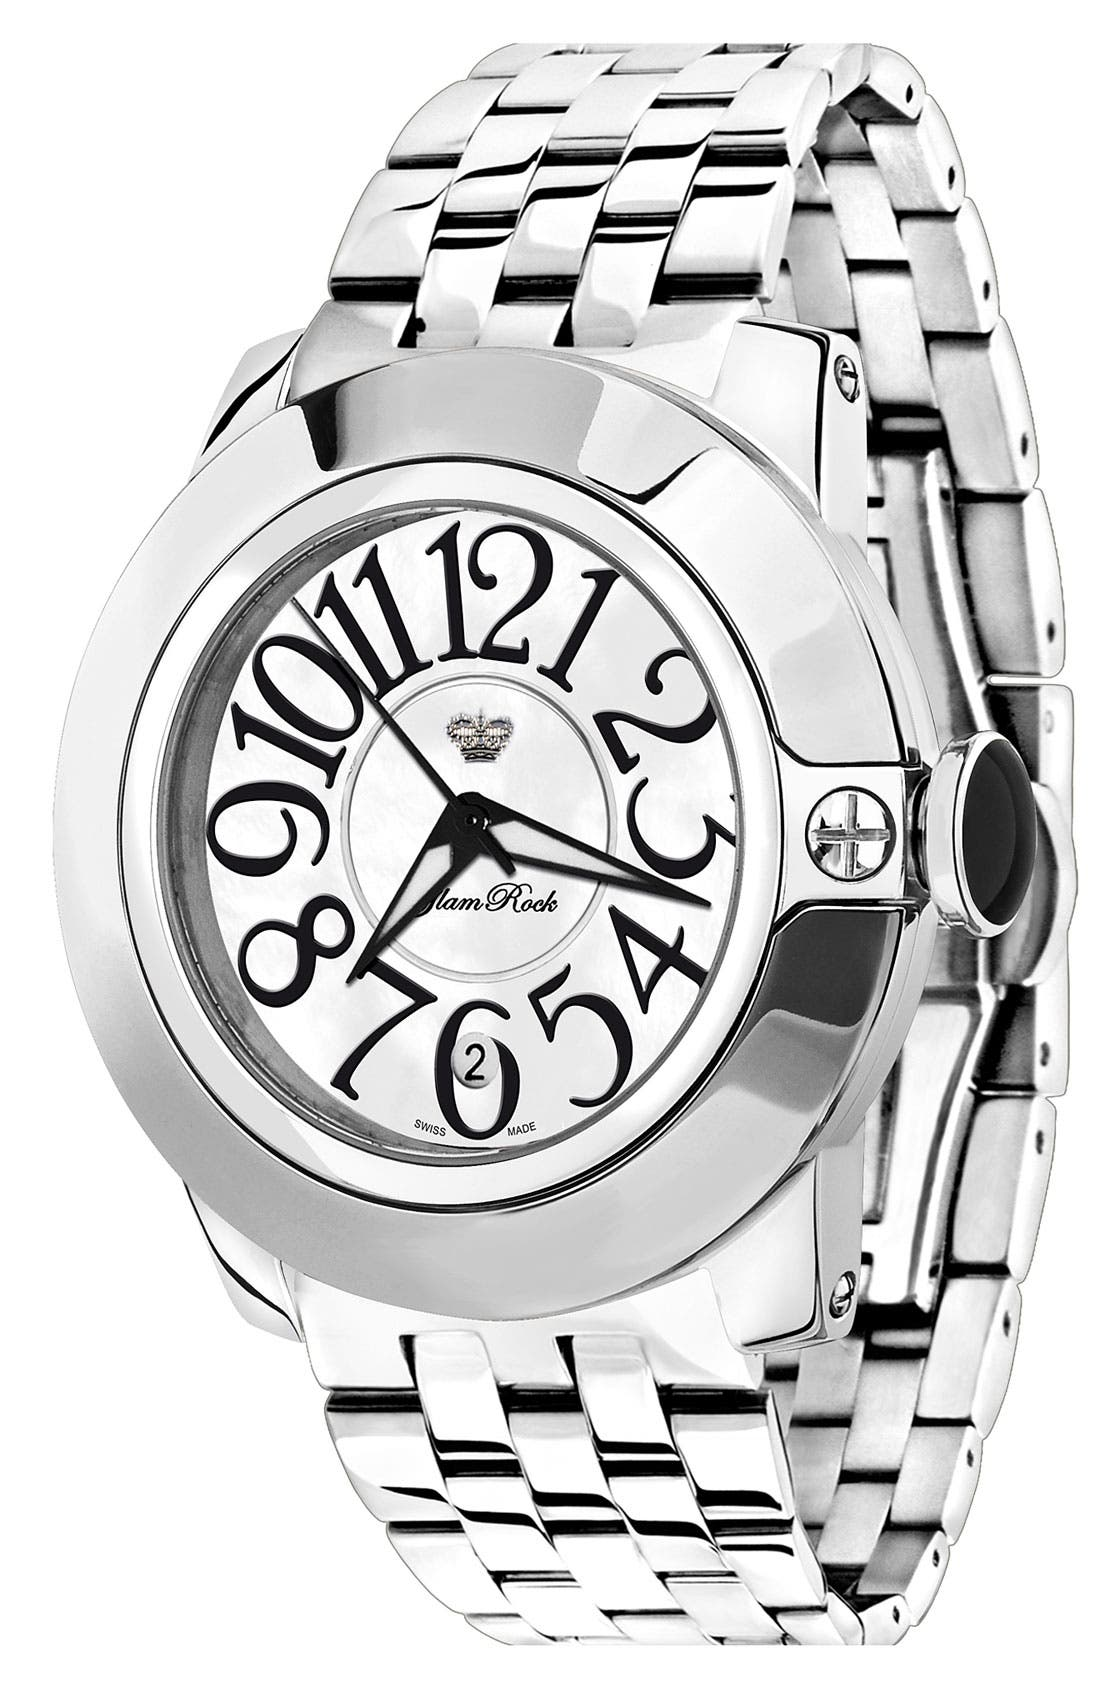 Main Image - Glam Rock 'So Be' Stainless Steel Bracelet Watch